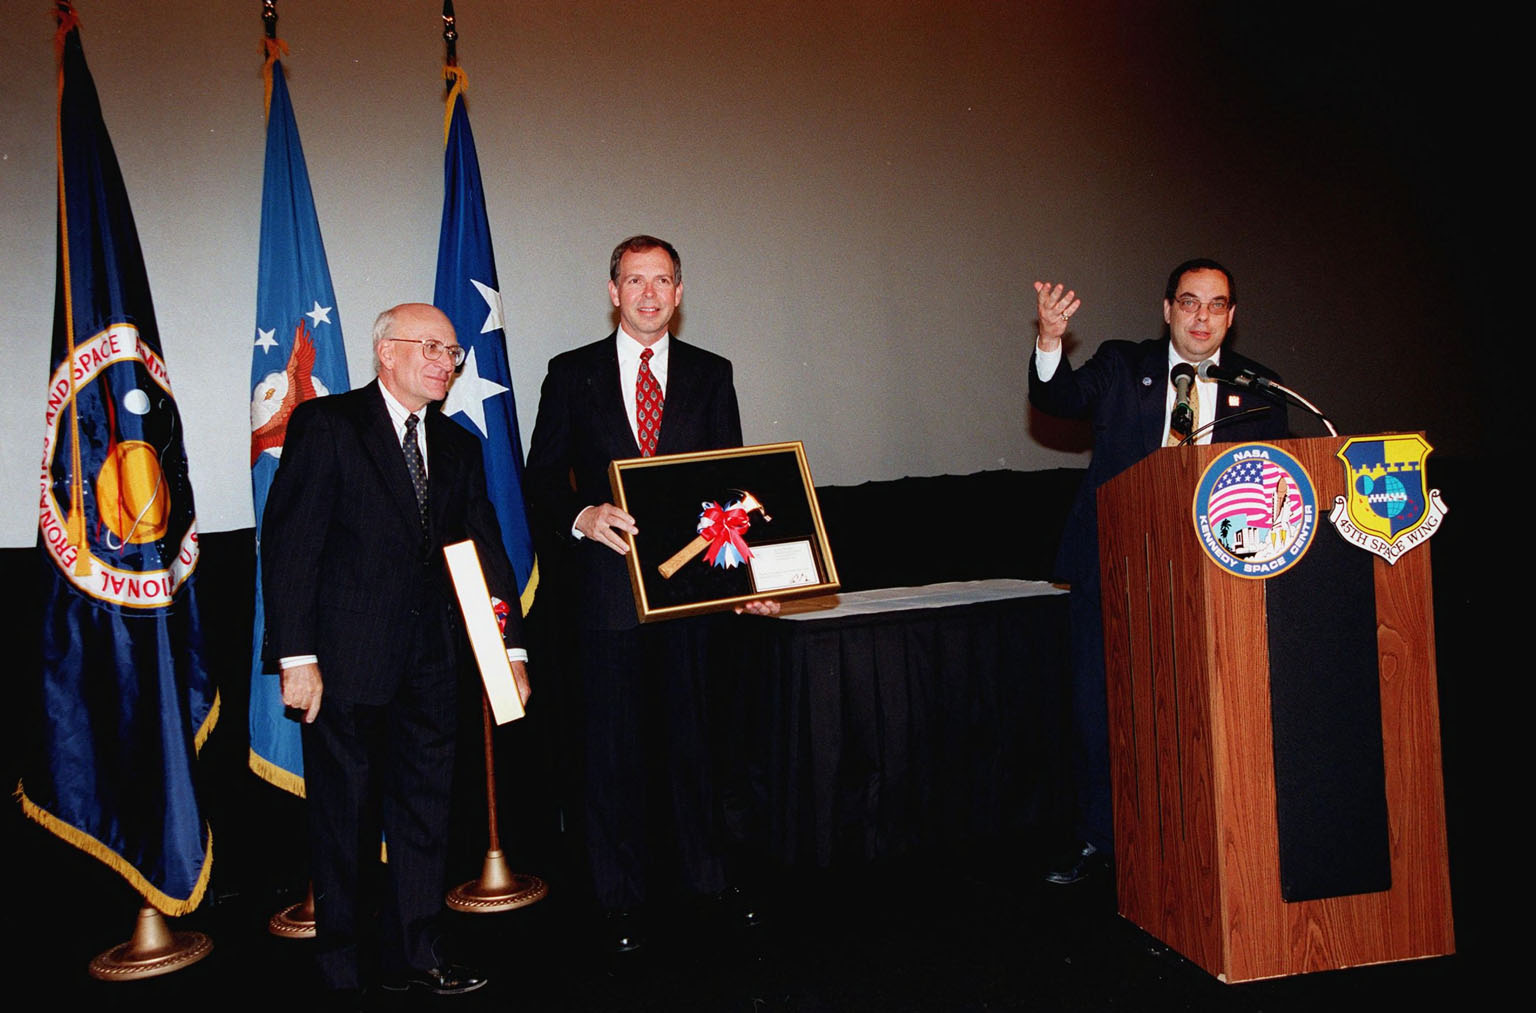 Ed Gormel (left) and Chris Fairey (center) display the Hammer Award they received at a special presentation in the IMAX 2 Theater in the Kennedy Space Center Visitor Complex. The Hammer Award is Vice President Al Gore's special recognition of teams of federal employees who have made significant contributions in support of the principles of the National Partnership for Reinventing Government. At the podium is Morley Winograd director of the National Partnership for Reinventing Government, who presented the award. This Hammer Award acknowledges the accomplishments of a joint NASA and Air Force team that established the Joint Base Operations and Support Contract (J-BOSC) Source Evaluation Board (SEB). Fairey and Gormel are co-chairs of the SEB. The team developed and implemented the acquisition strategy for establishing a single set of base operations and support service requirements for KSC, Cape Canaveral Air Station and Patrick Air Force Base